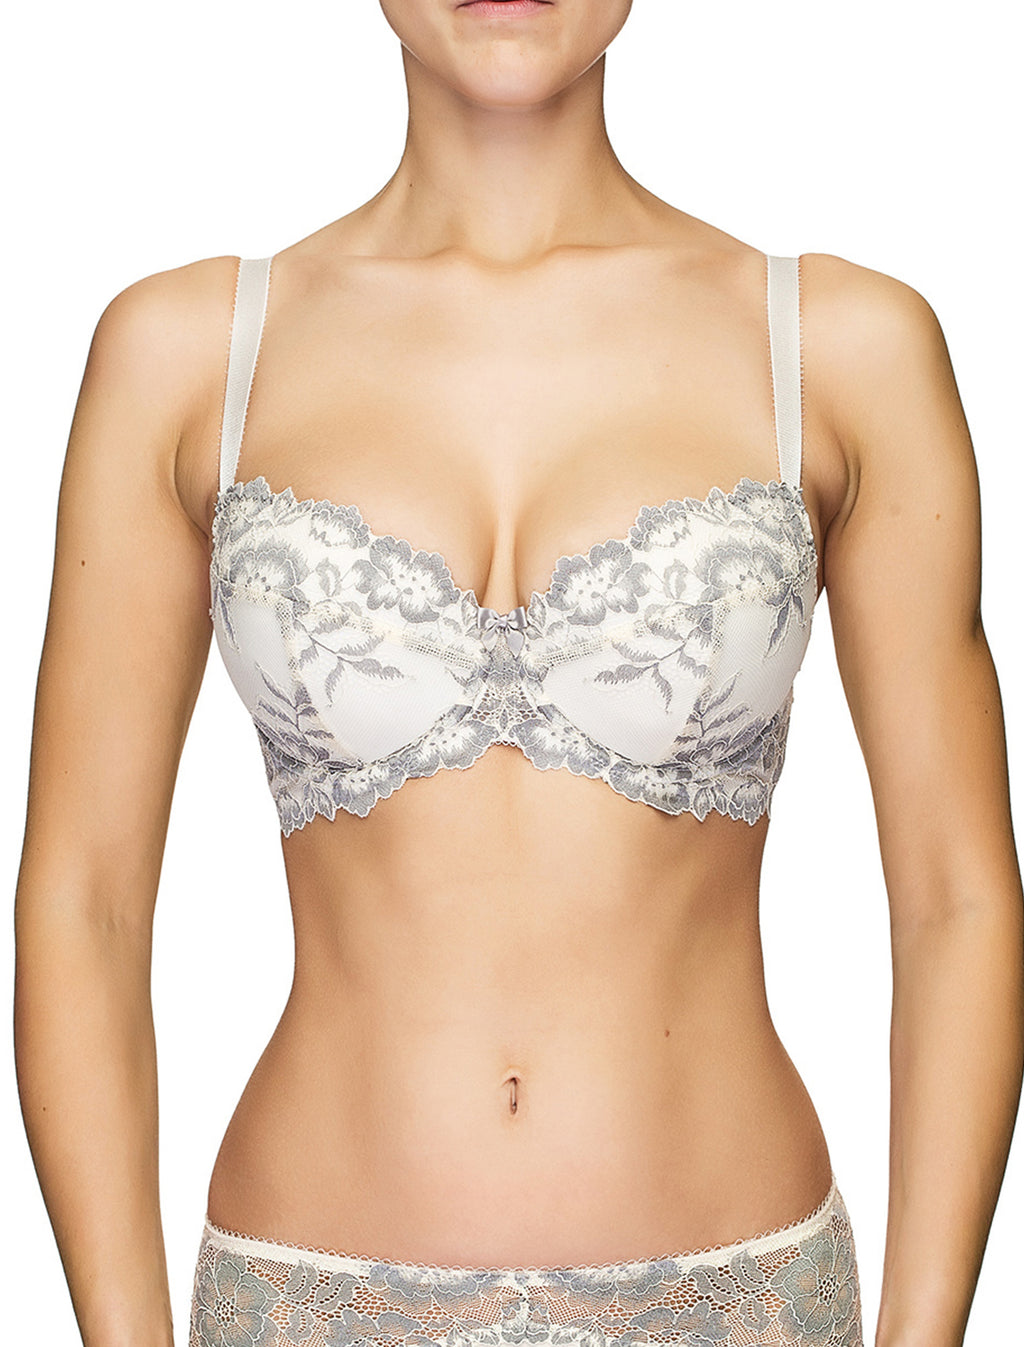 Lauma, Ivory Lace Push-up Bra, On Model Front, 04J16